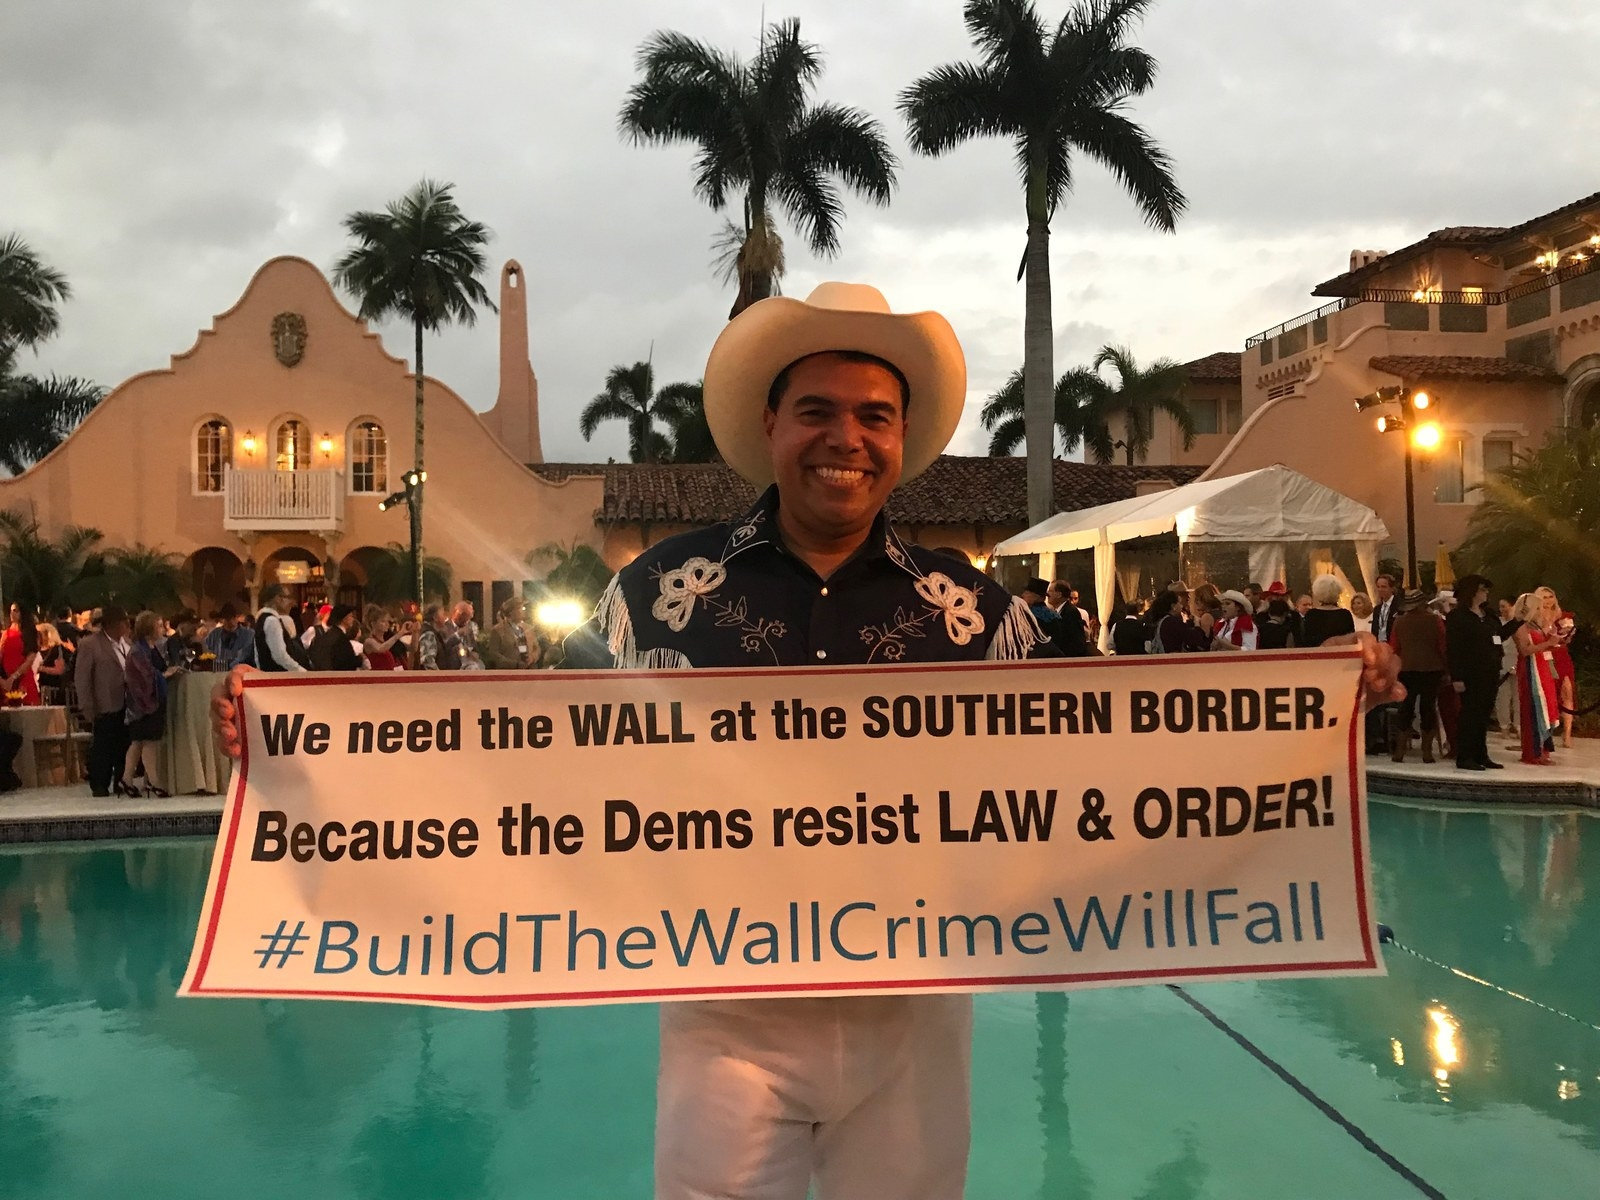 A supporter poolside at the Mar-a-Lago event, Feb. 23.